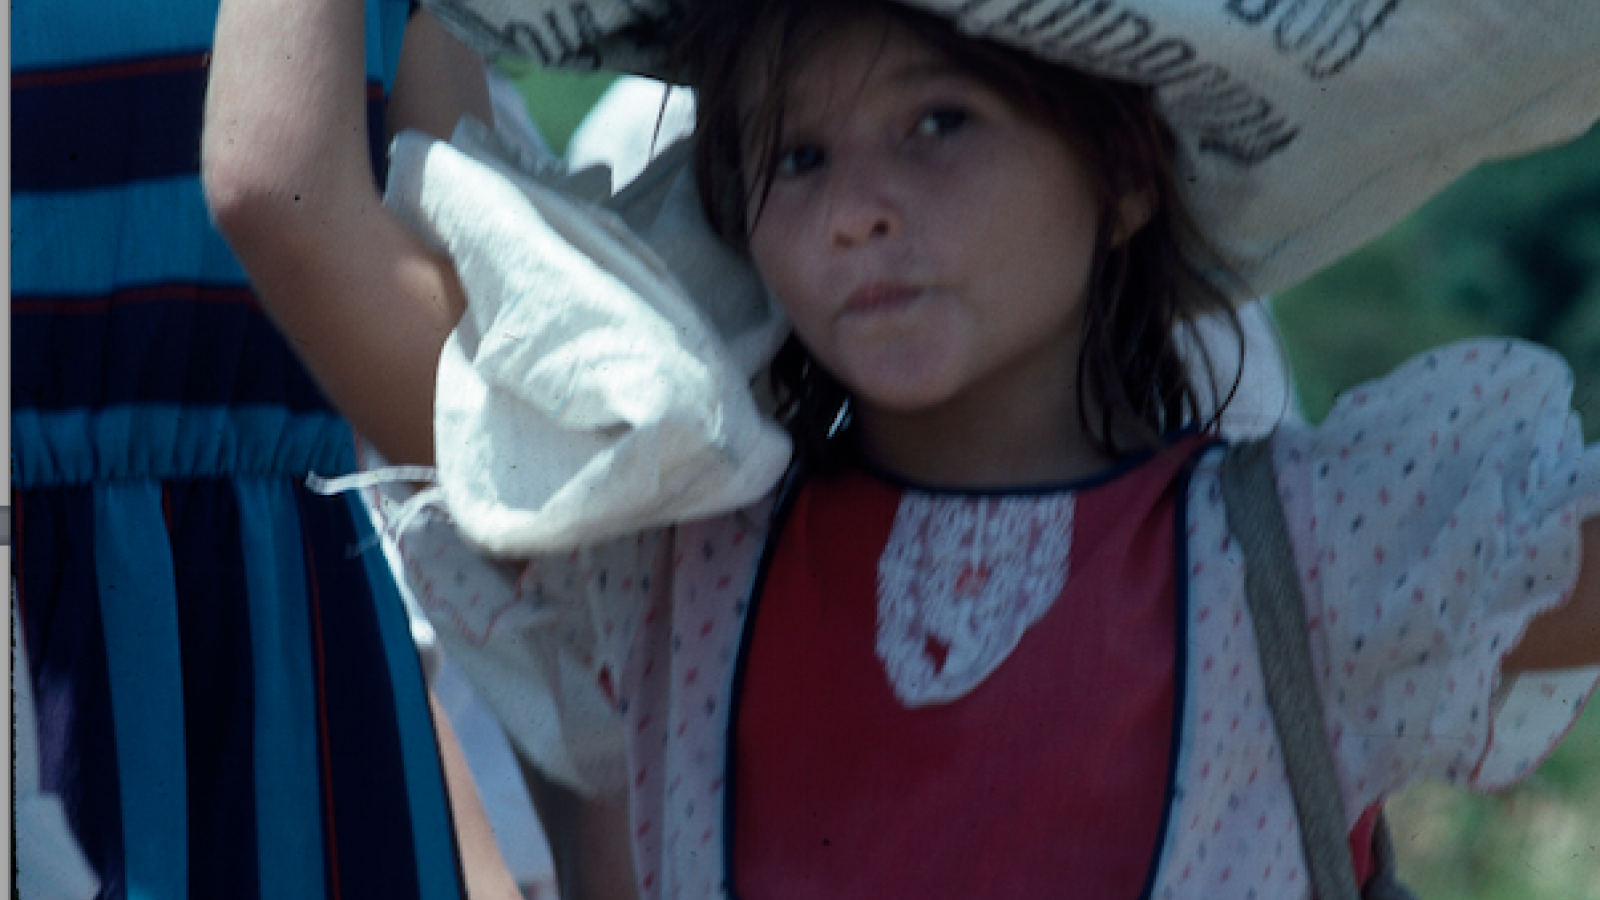 Photo of a Young Girl - Copapayo